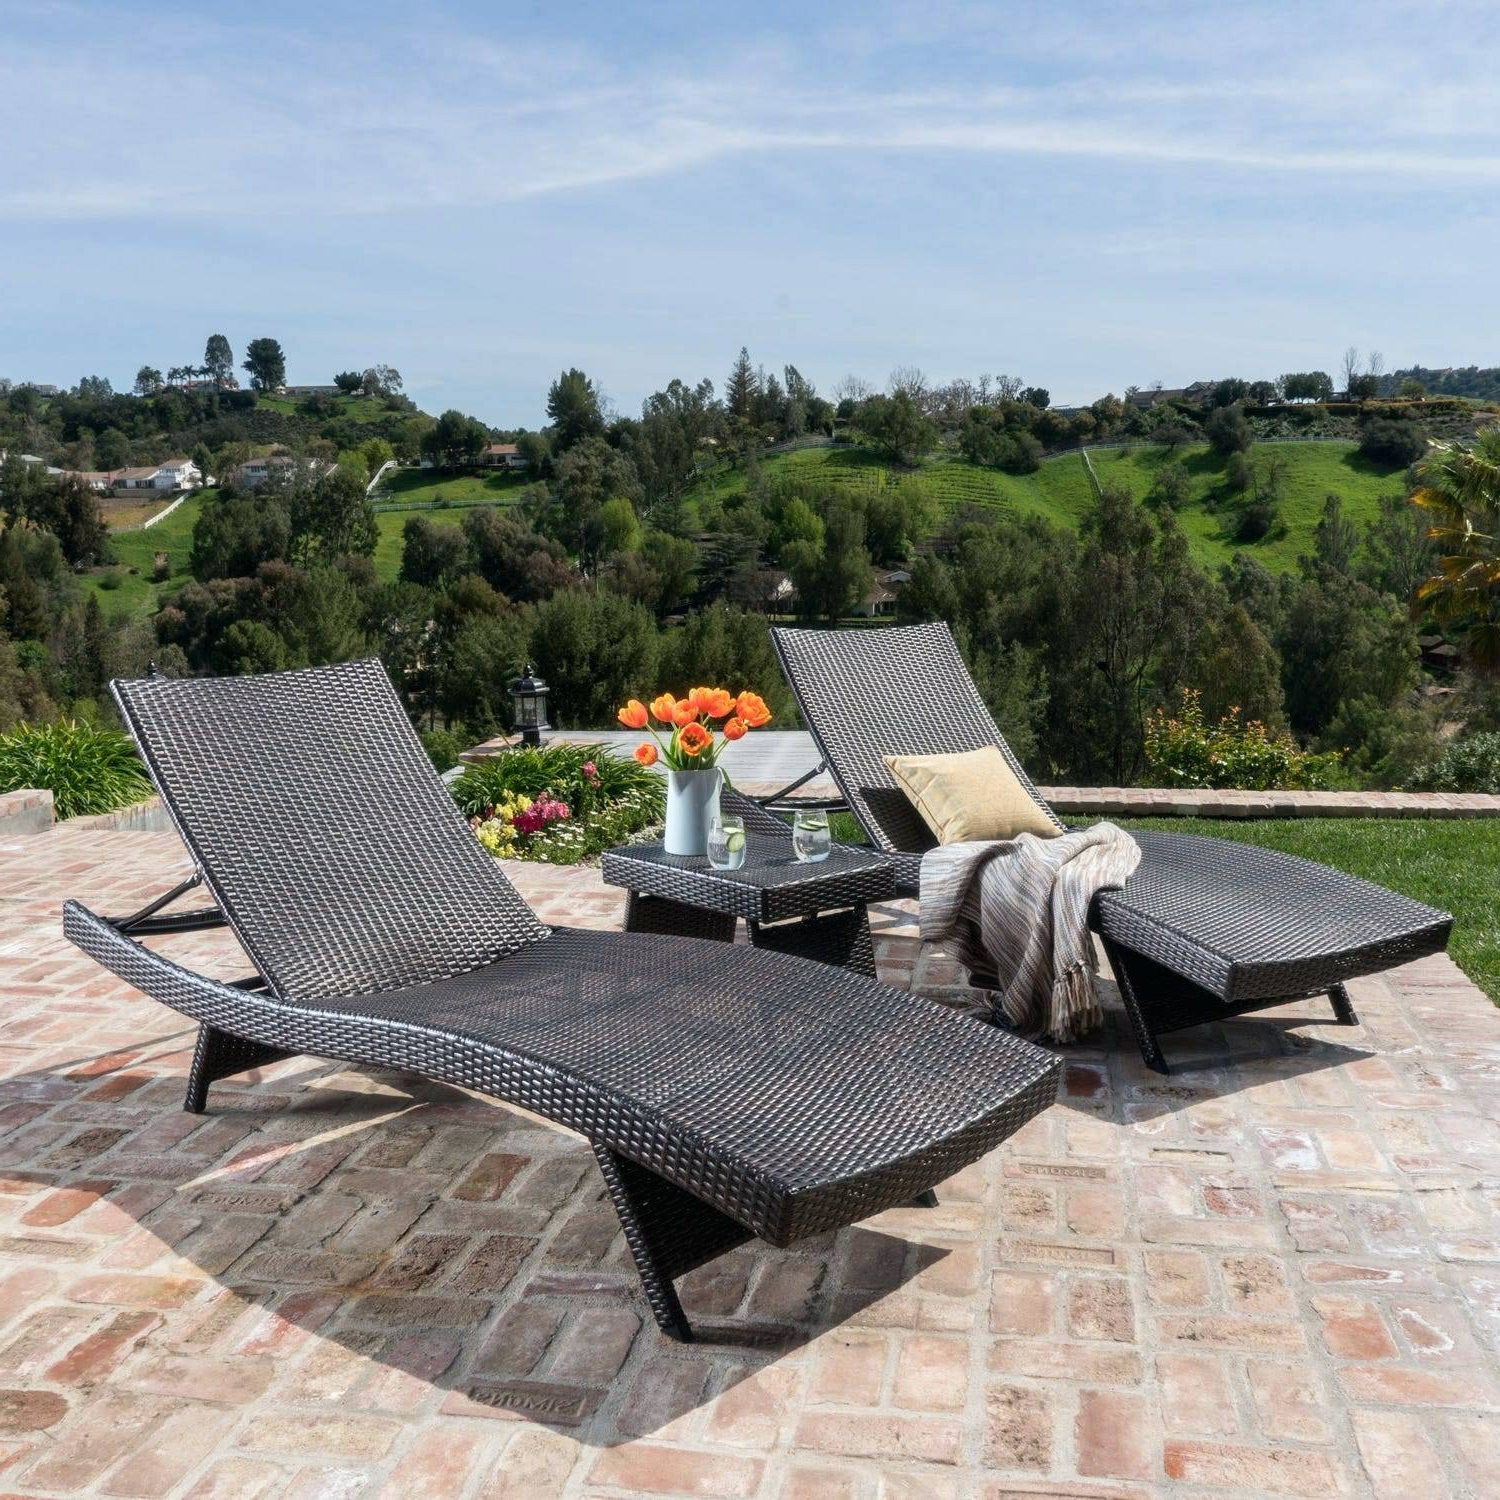 Shore Alumunium Outdoor 3 Piece Chaise Lounger Sets Pertaining To Recent Outdoor Wicker Chaise Lounge Chair Brown 3 Piece Set  (View 17 of 25)